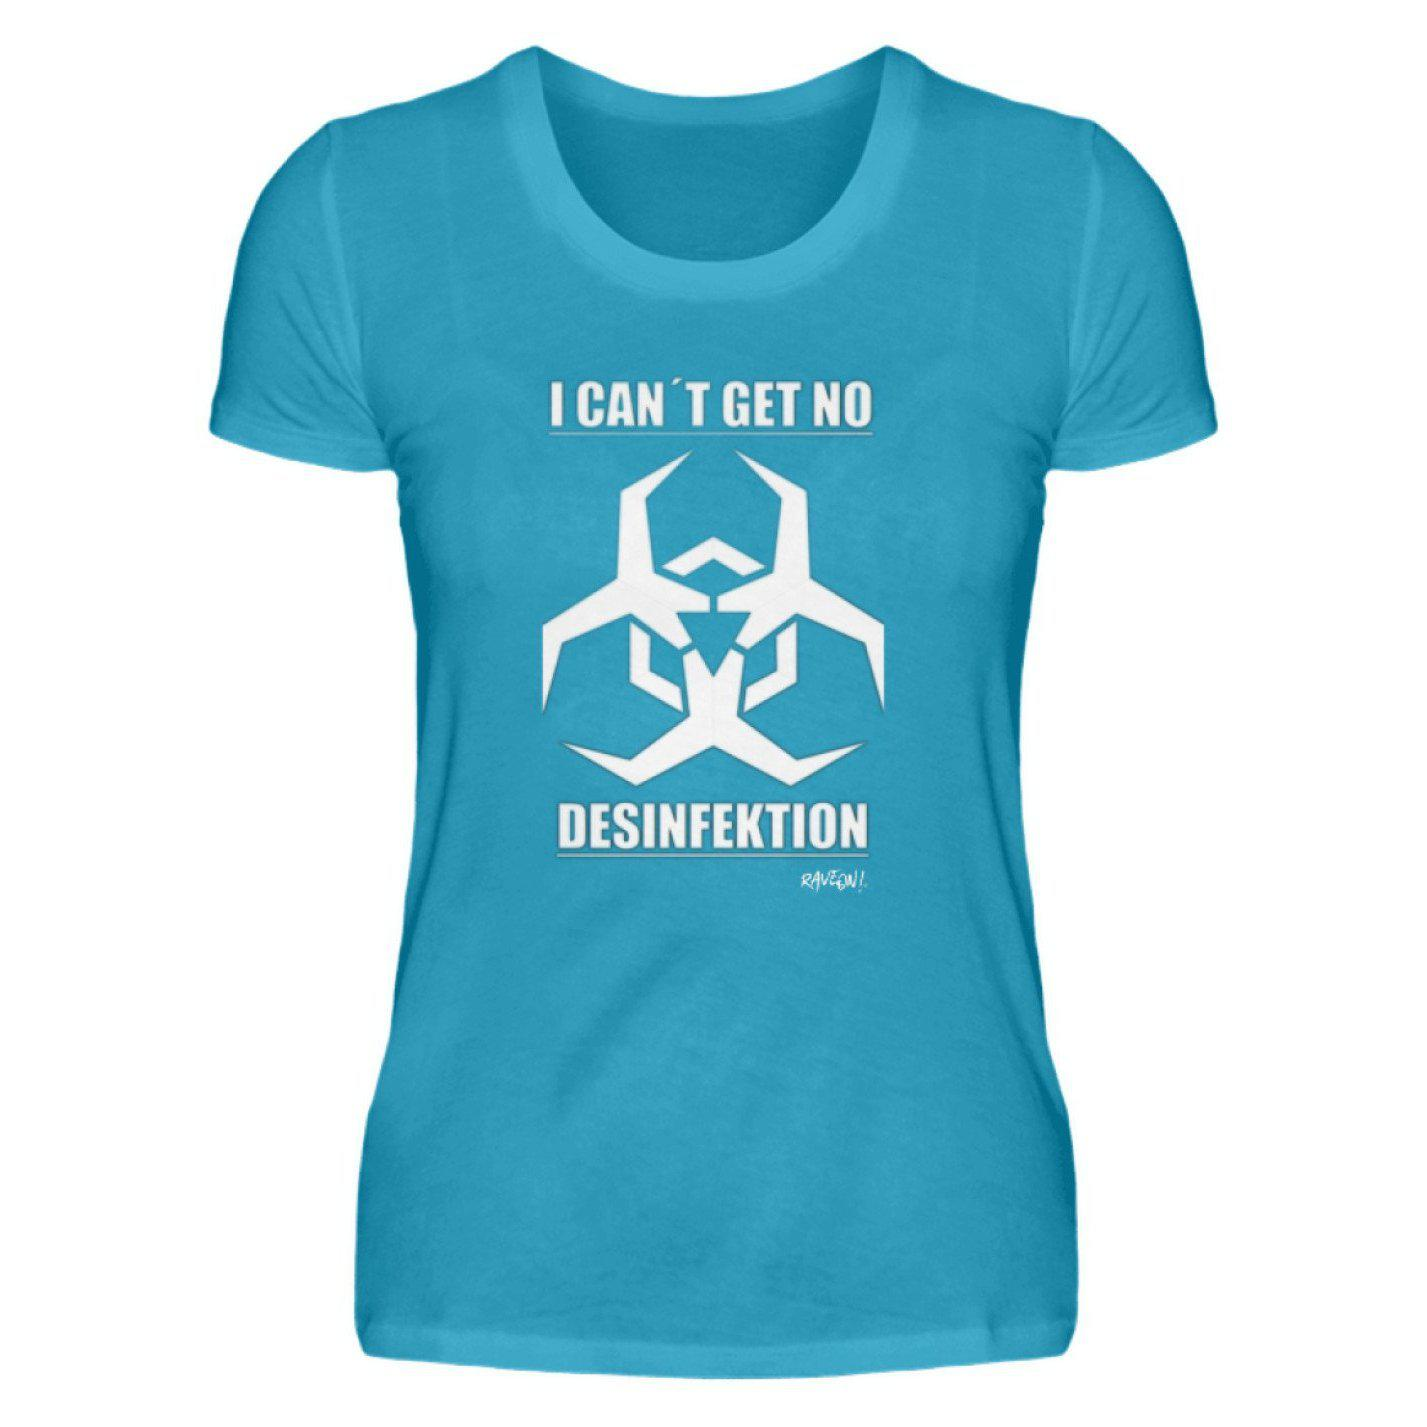 I CAN´T GET NO DESINFEKTION - Rave On!® - Damen Premiumshirt Damen Premium Shirt Turquoise / S - Rave On!® der Club & Techno Szene Shop für Coole Junge Mode Streetwear Style & Fashion Outfits + Sexy Festival 420 Stuff